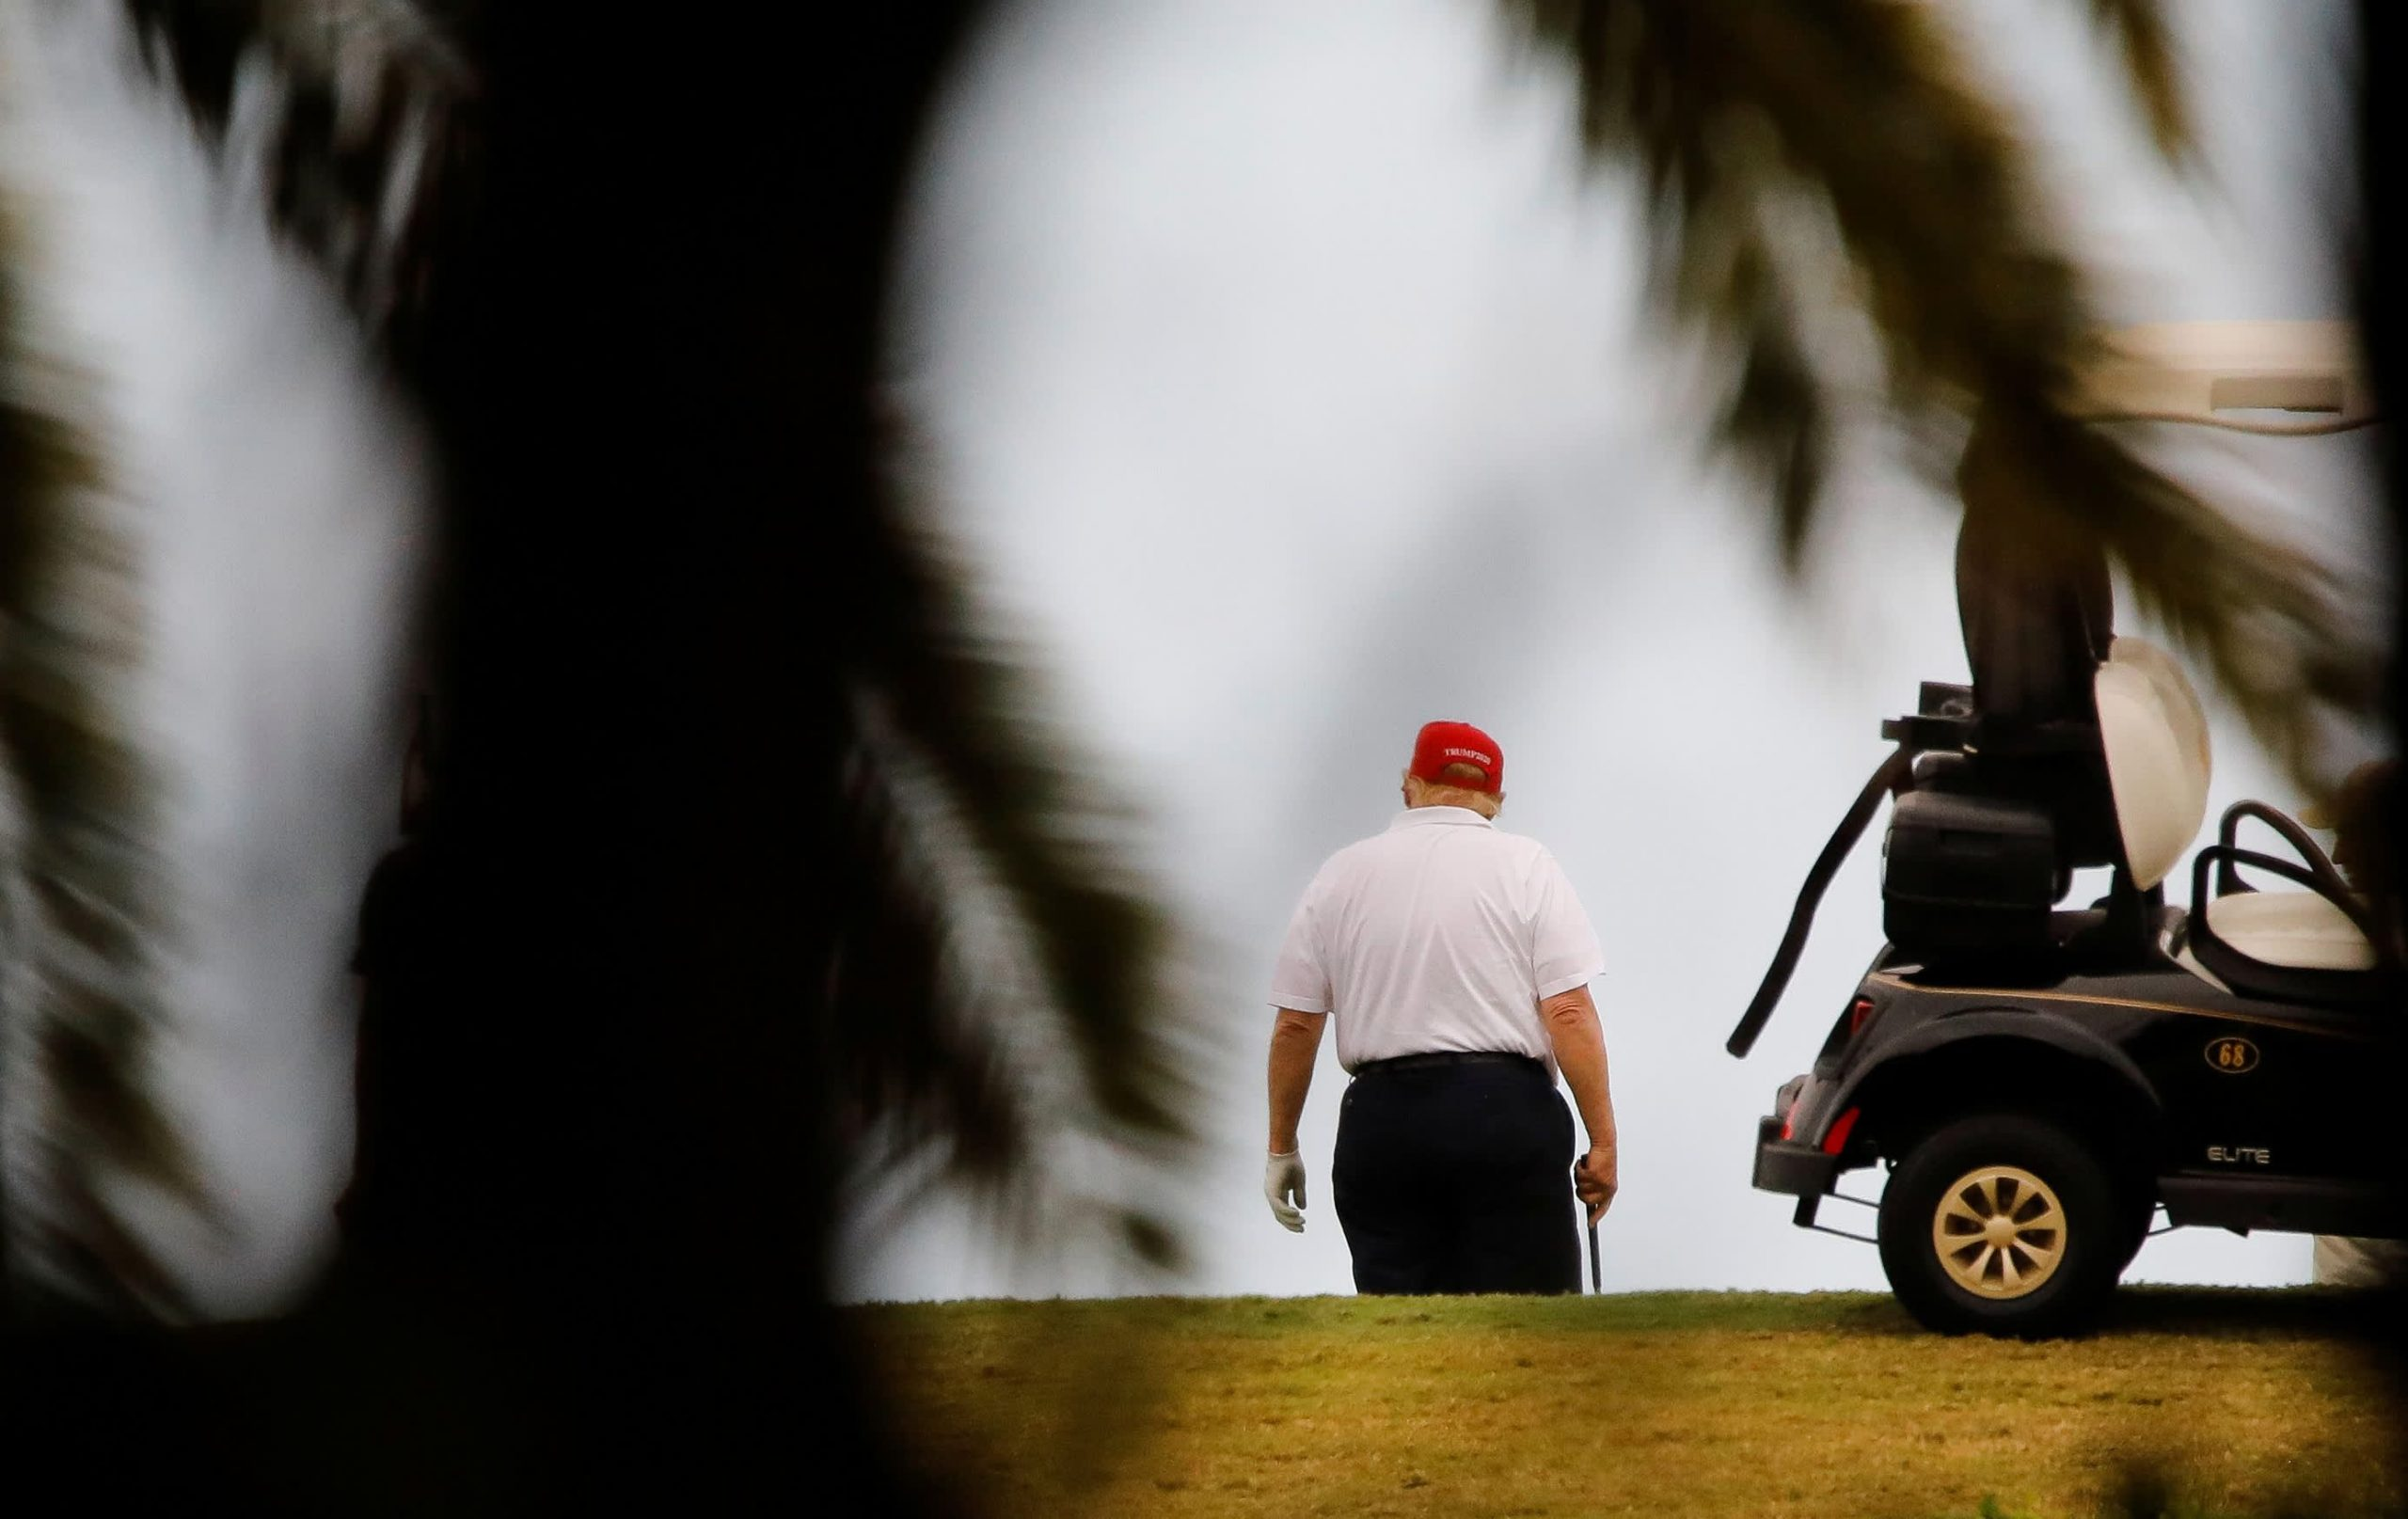 Palm Seashore County eyes yanking Trump golf course lease after U.S. Capitol riot